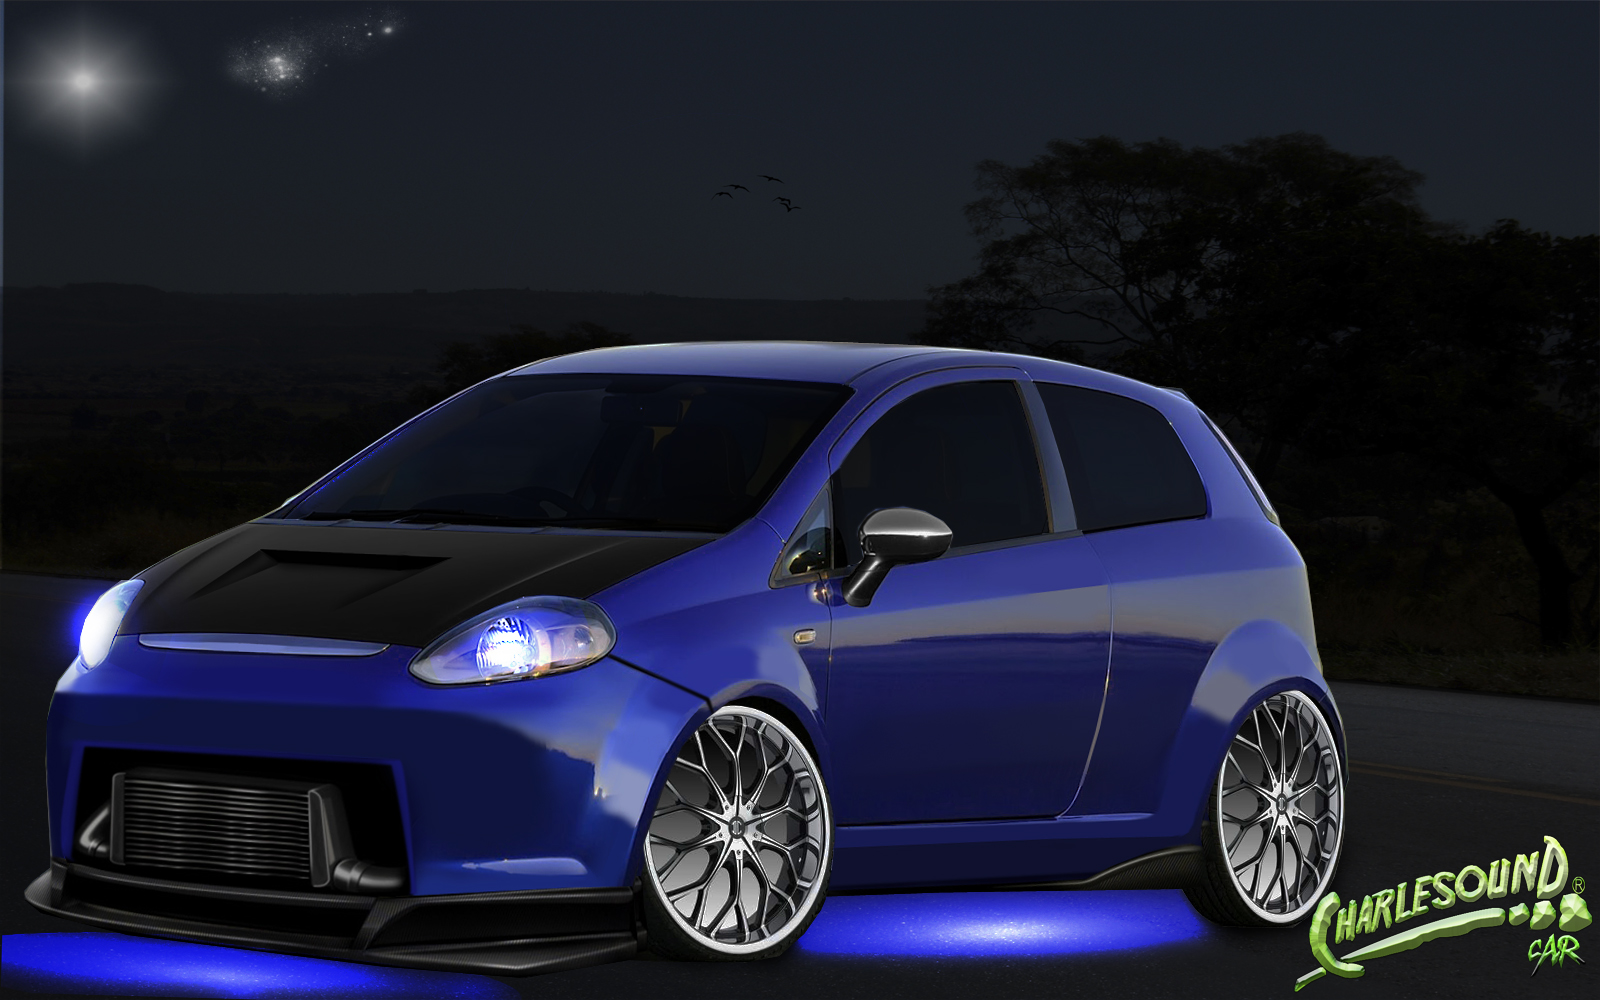 fiat punto 2010 virtual tuning by charlesoundcar. Black Bedroom Furniture Sets. Home Design Ideas